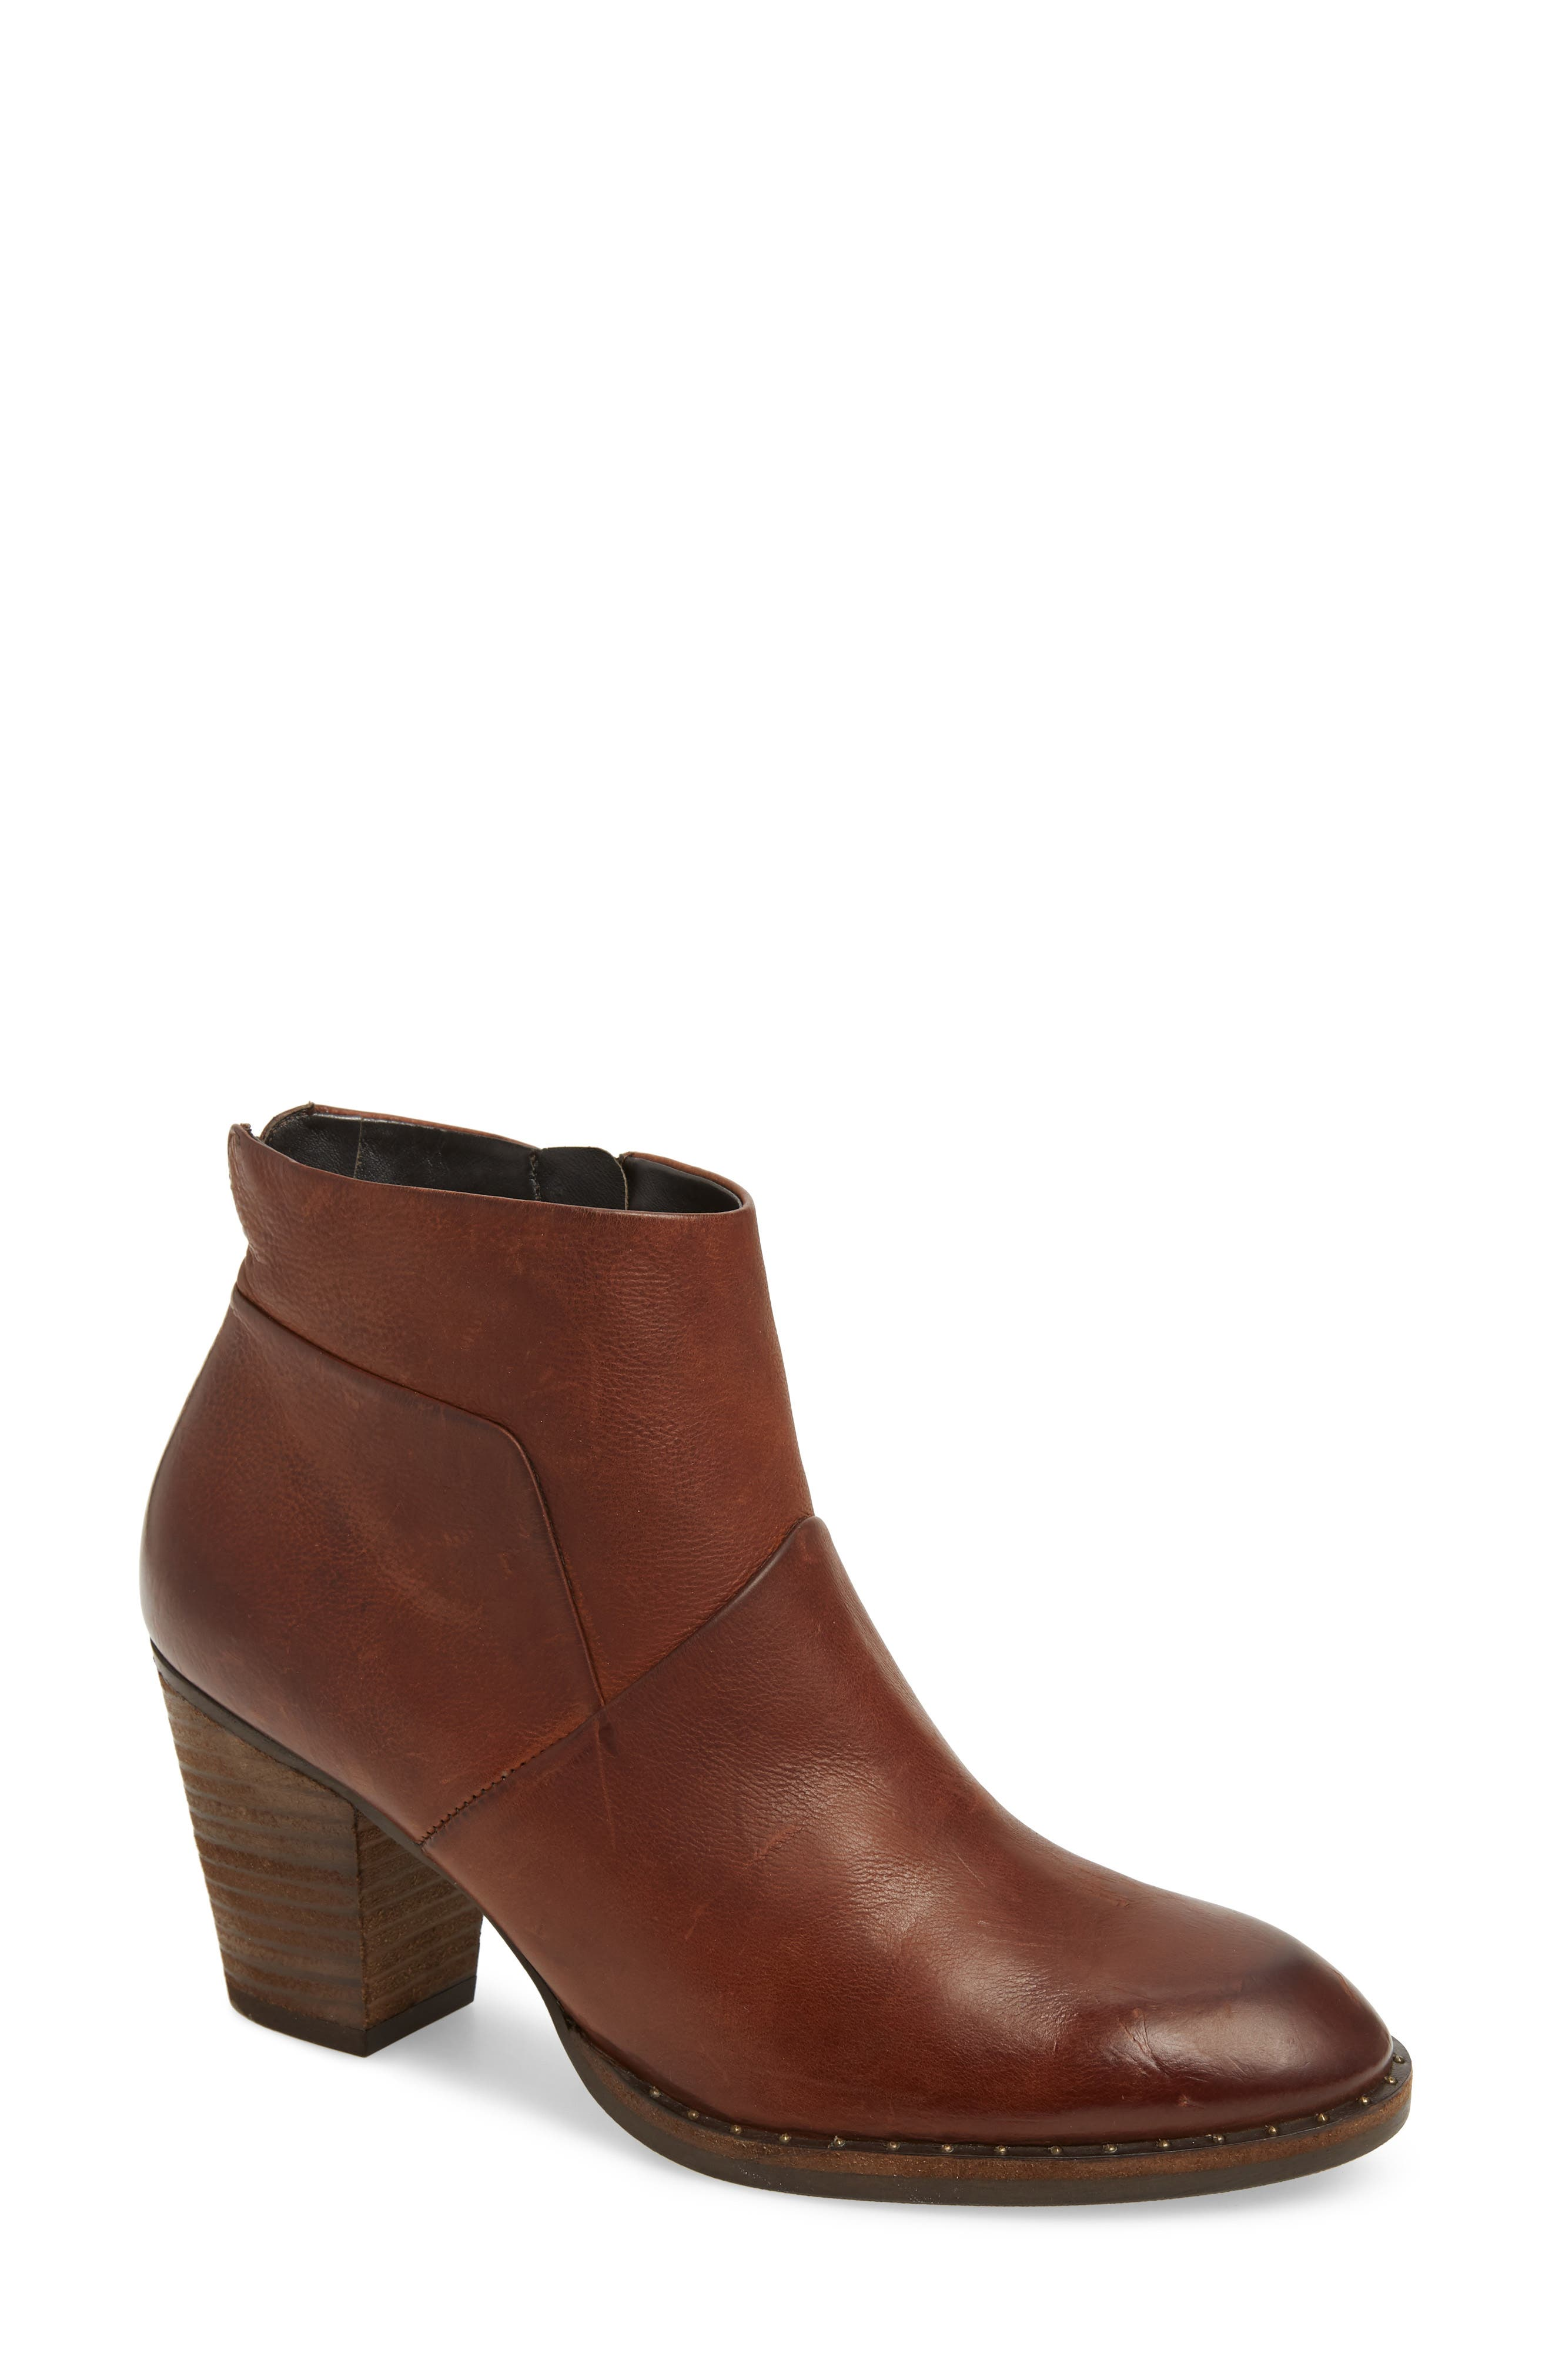 Stella Bootie,                         Main,                         color, SADDLE LEATHER